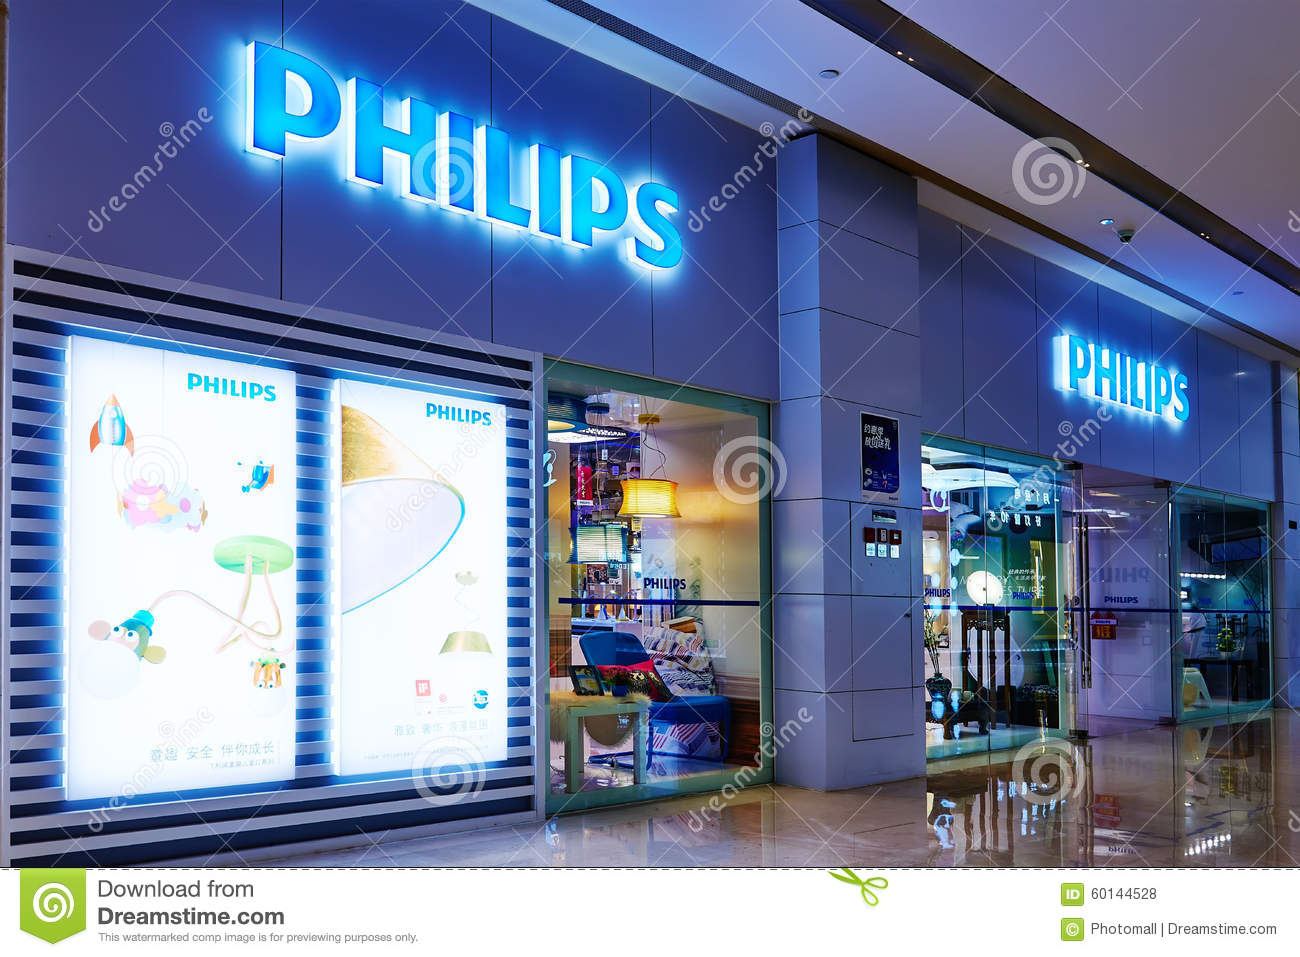 Philips shop